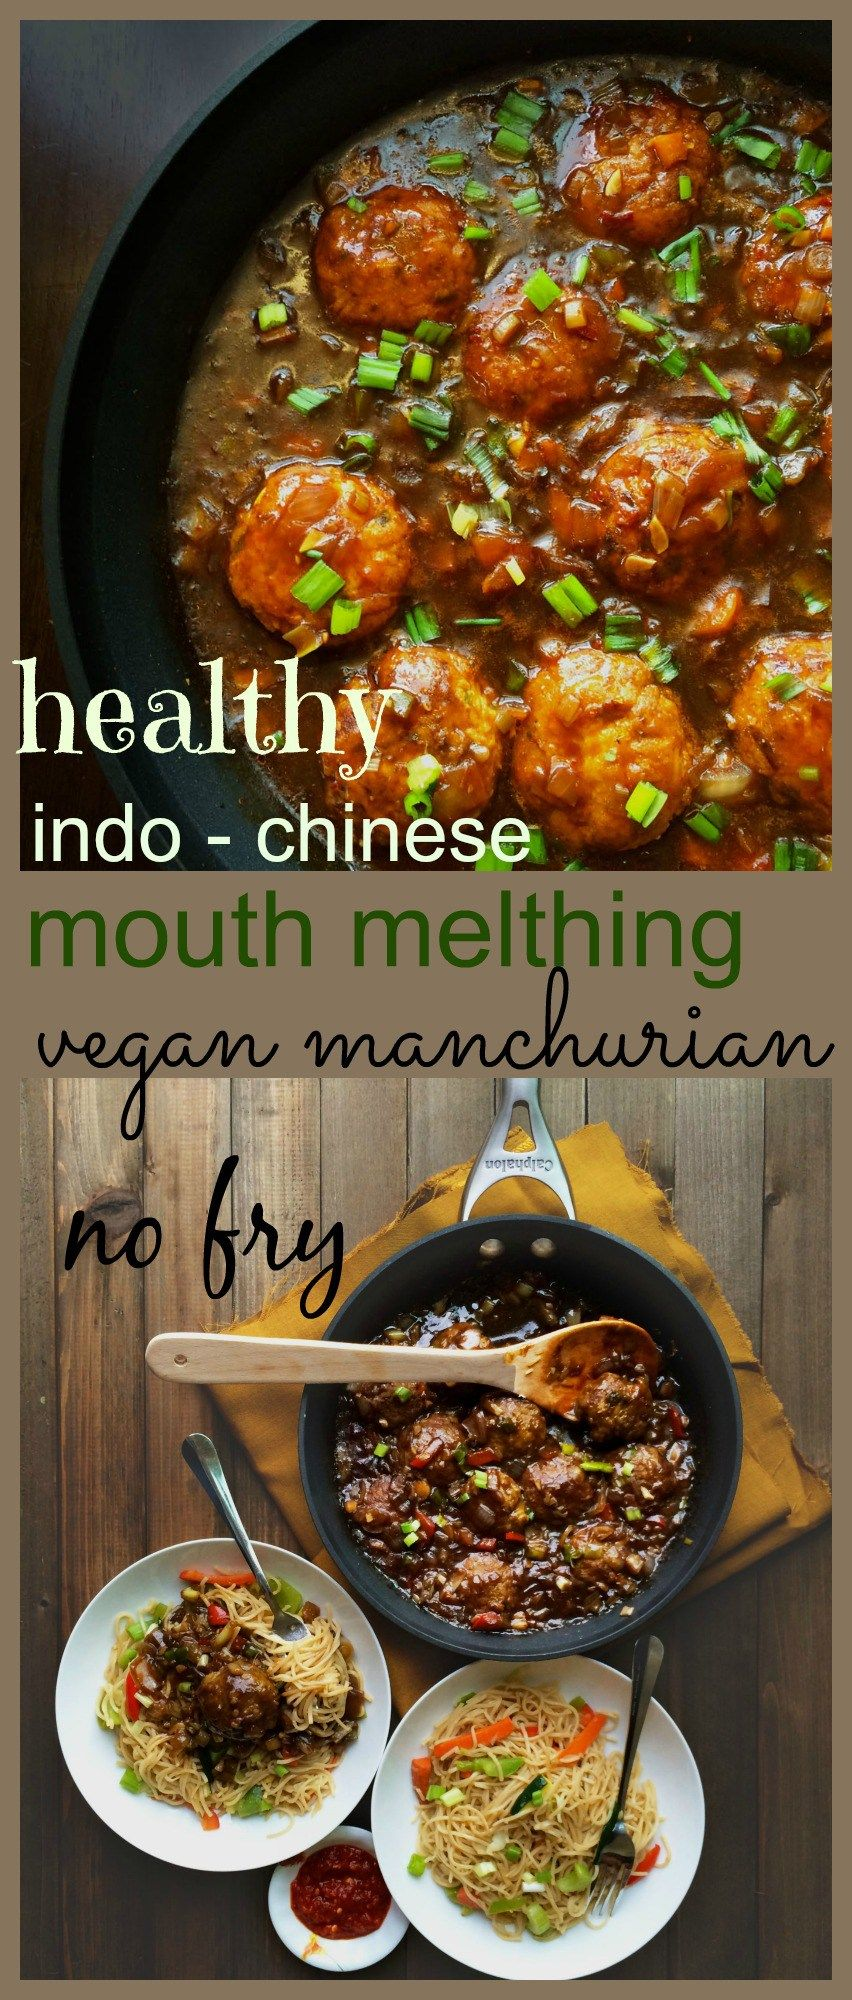 Easy no fry veg manchurian gravy indo chinese vegan vegan easy no fry veg manchurian gravy indo chinese vegan forumfinder Image collections